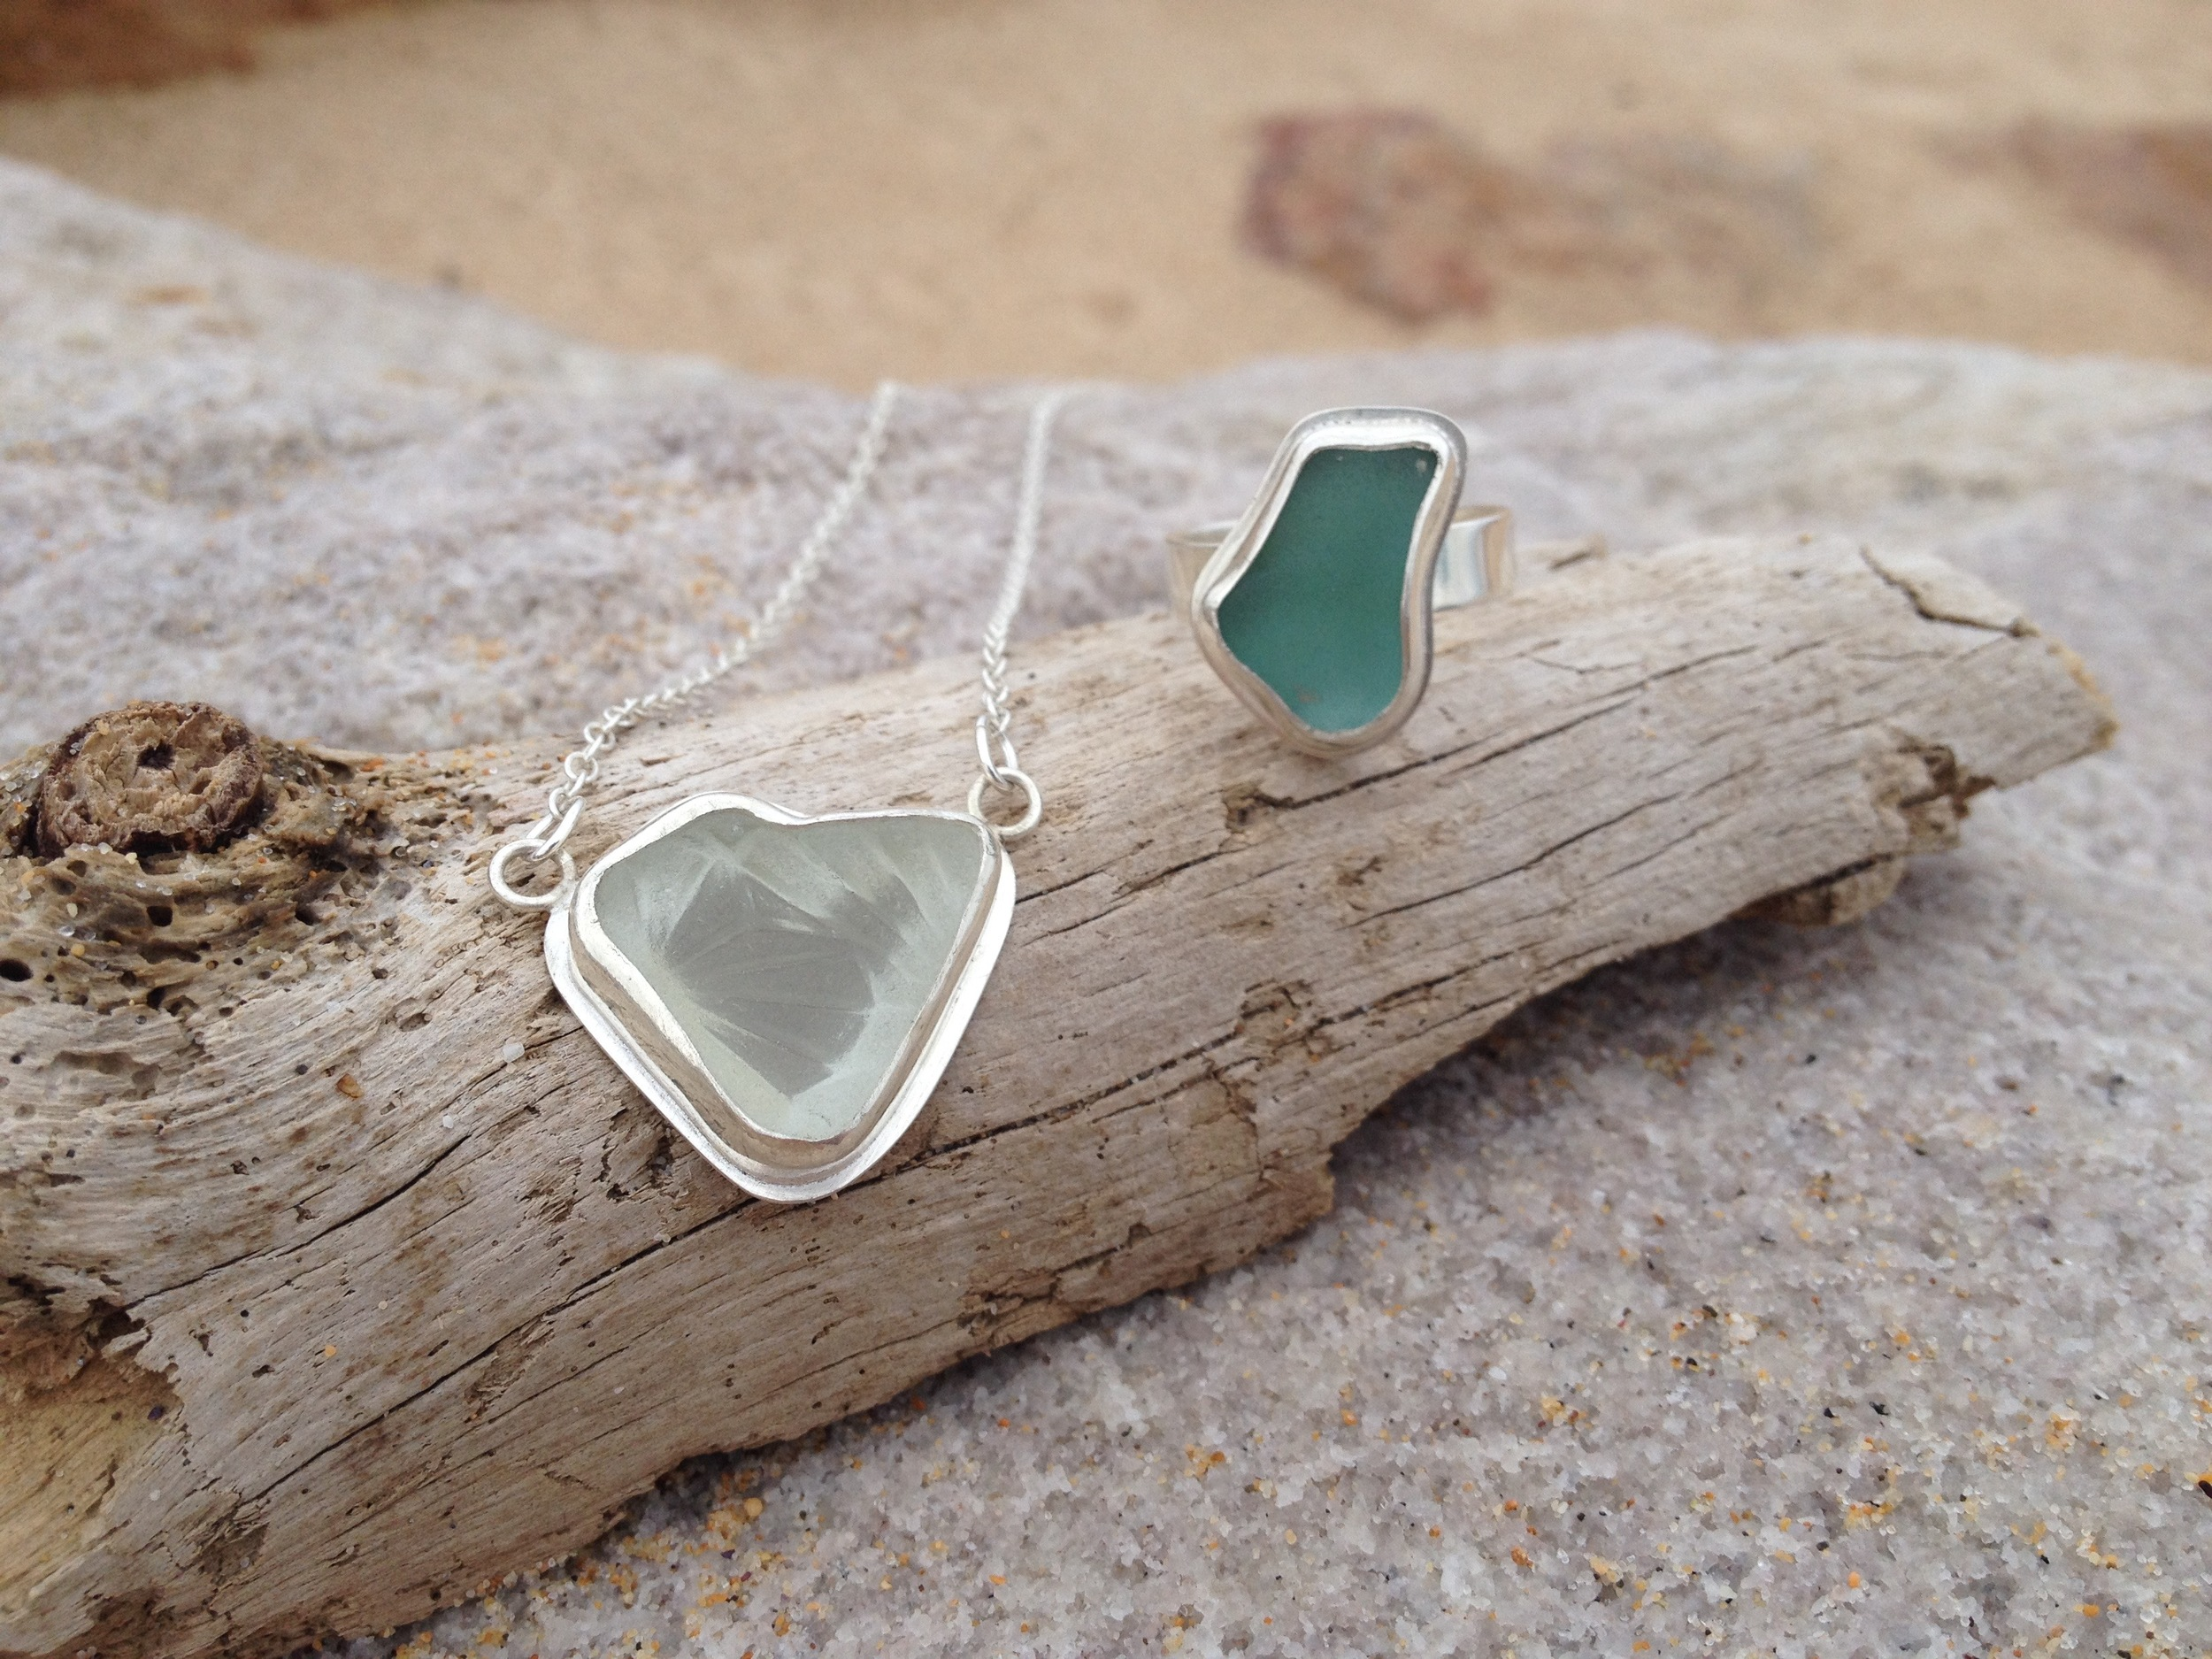 Crystal Heart White Sea Glass Necklace and Turquoise Sea Glass Ring Set